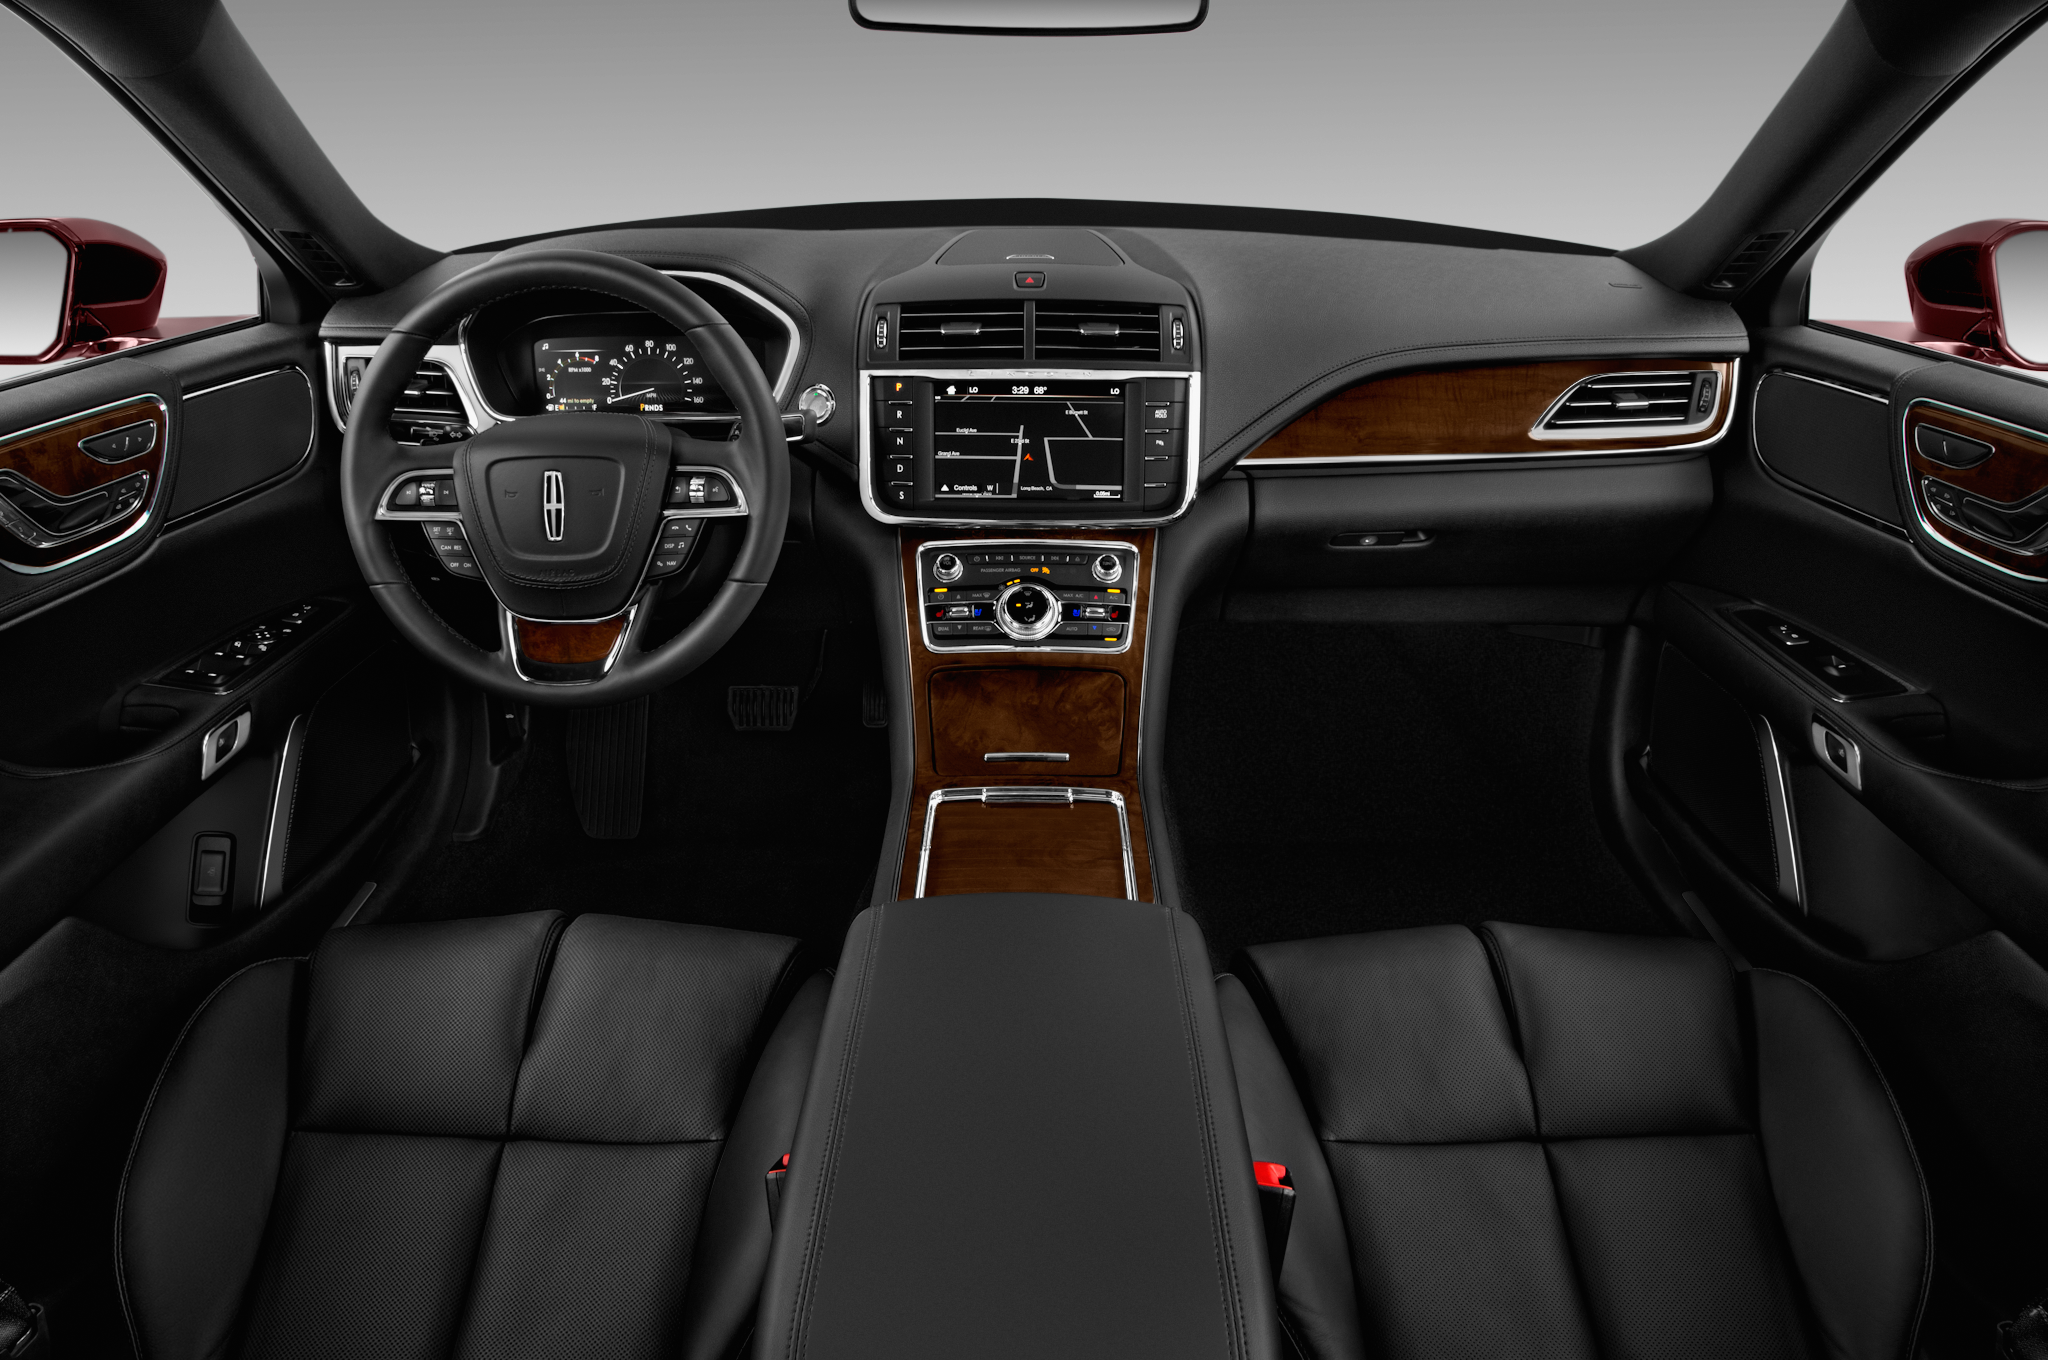 2017 lincoln continental interior spied with sync 3 wood trim. Black Bedroom Furniture Sets. Home Design Ideas